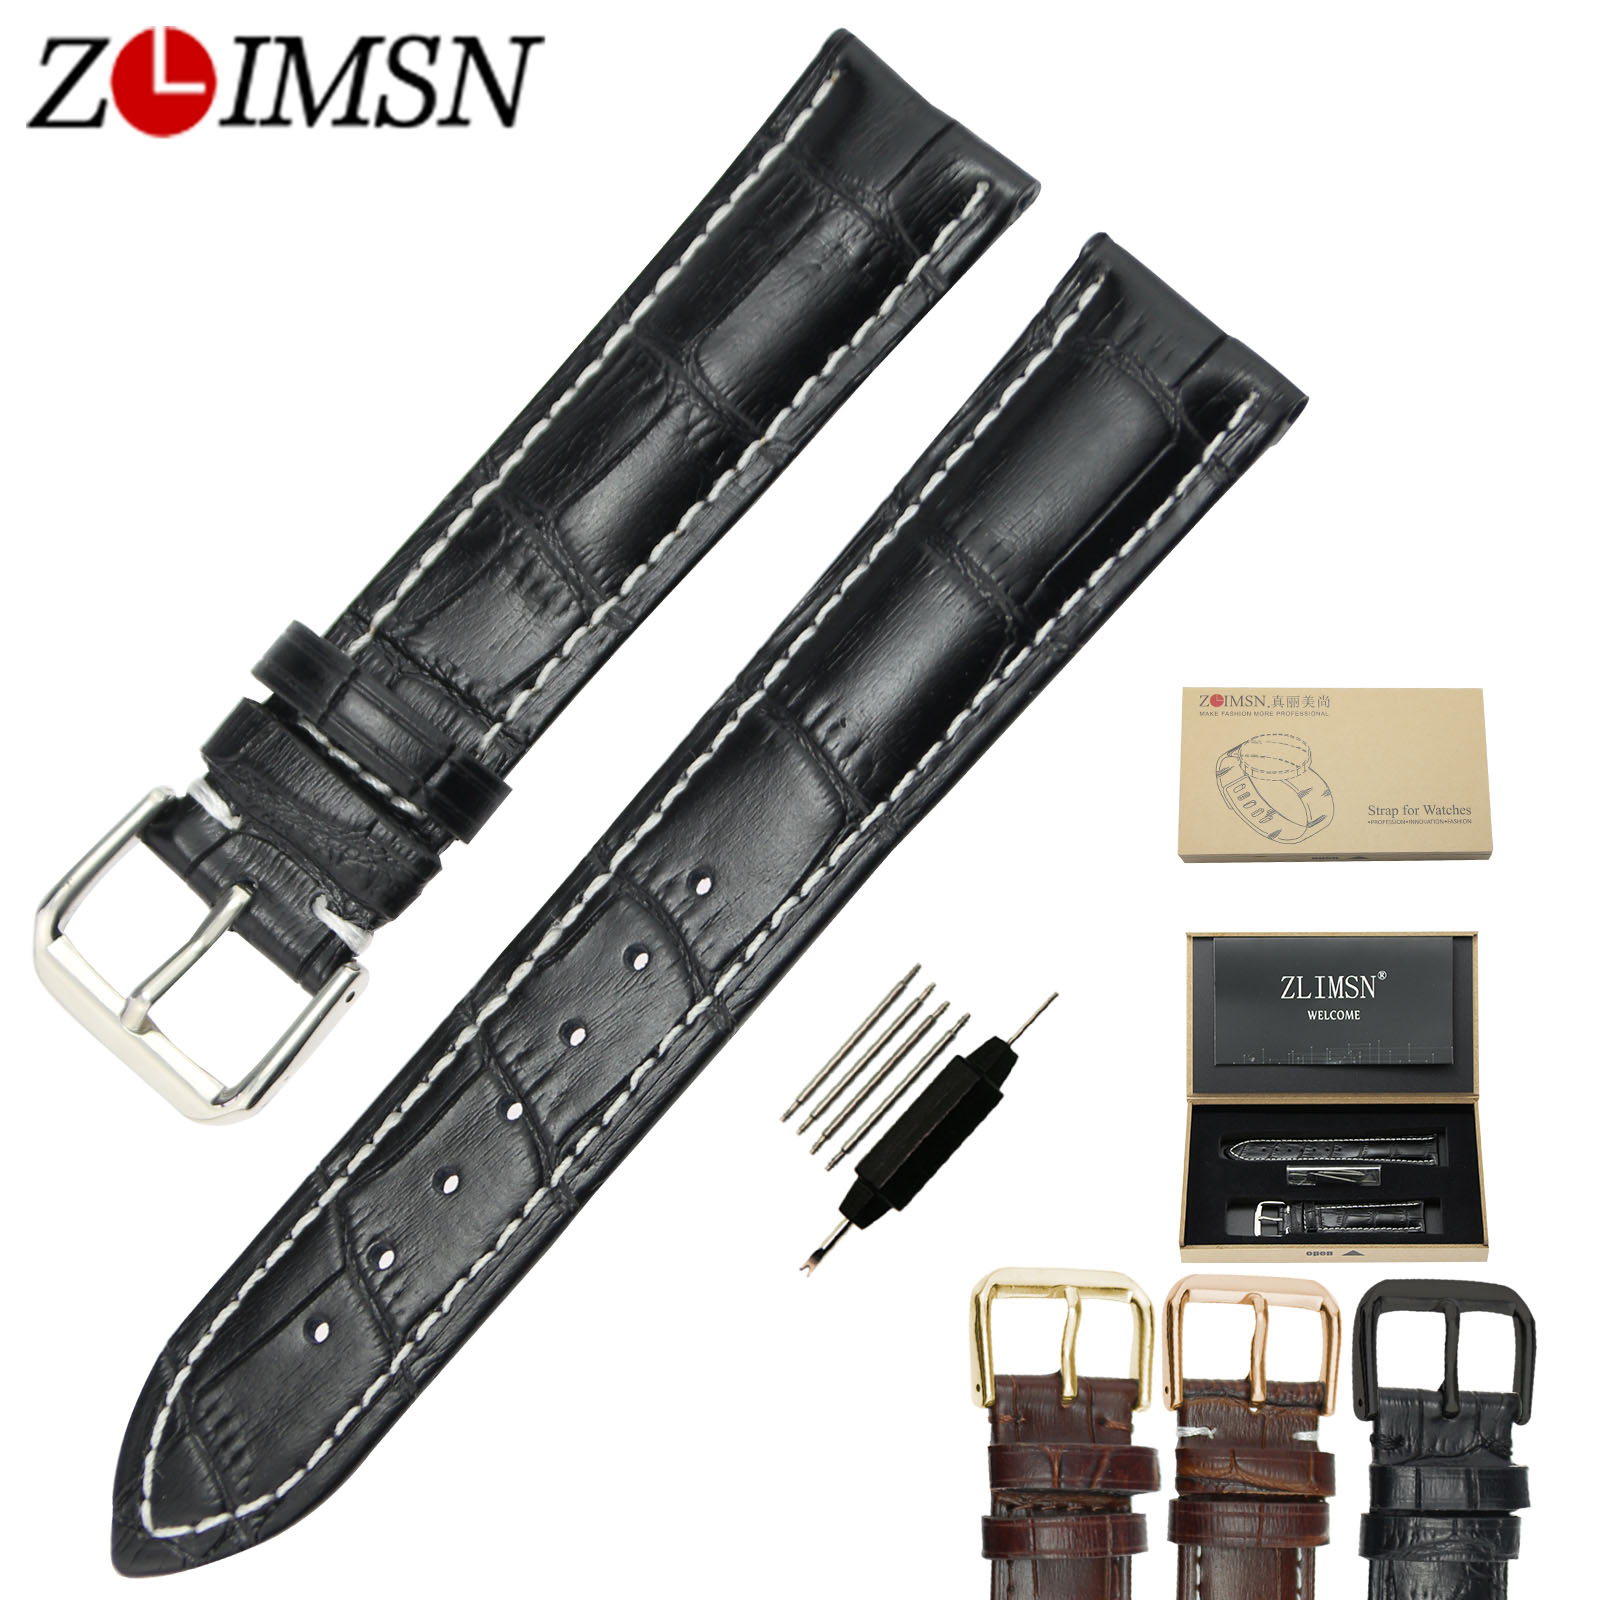 ZLIMSN Genuine Leather Watchbands for Casio Watch Belt 18 19 20 21 22 23 24mm Stainless Steel Buckle Silver Gold Rose Polished цена и фото